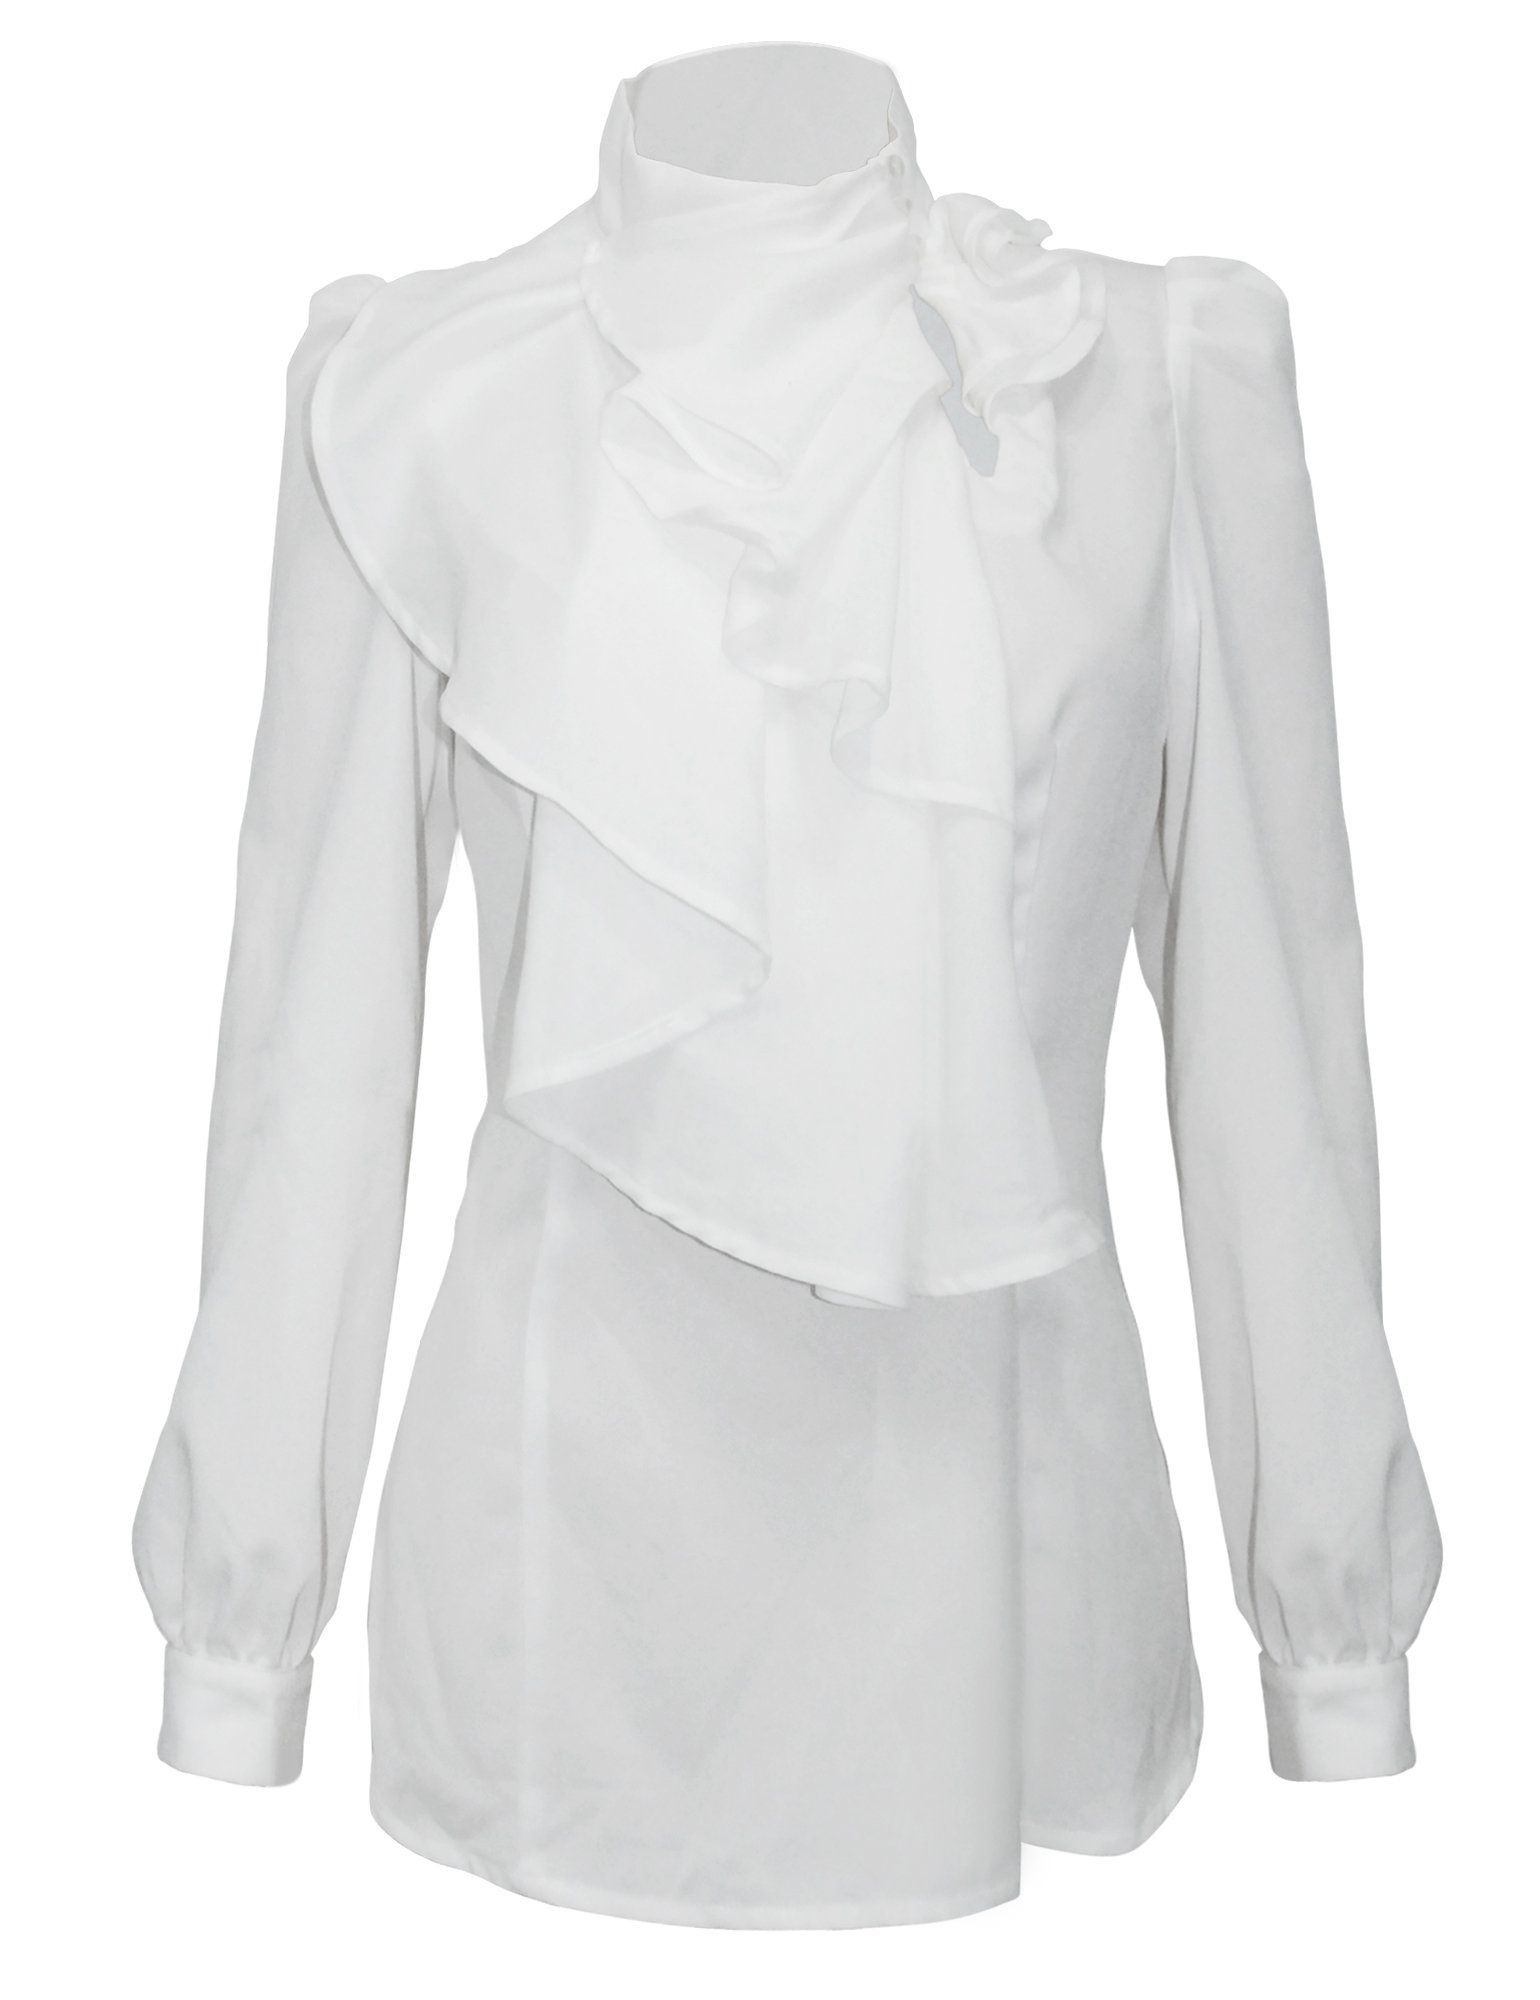 Prettyguide Women Stand Up Collar Lotus Ruffle Shirts Blouse At